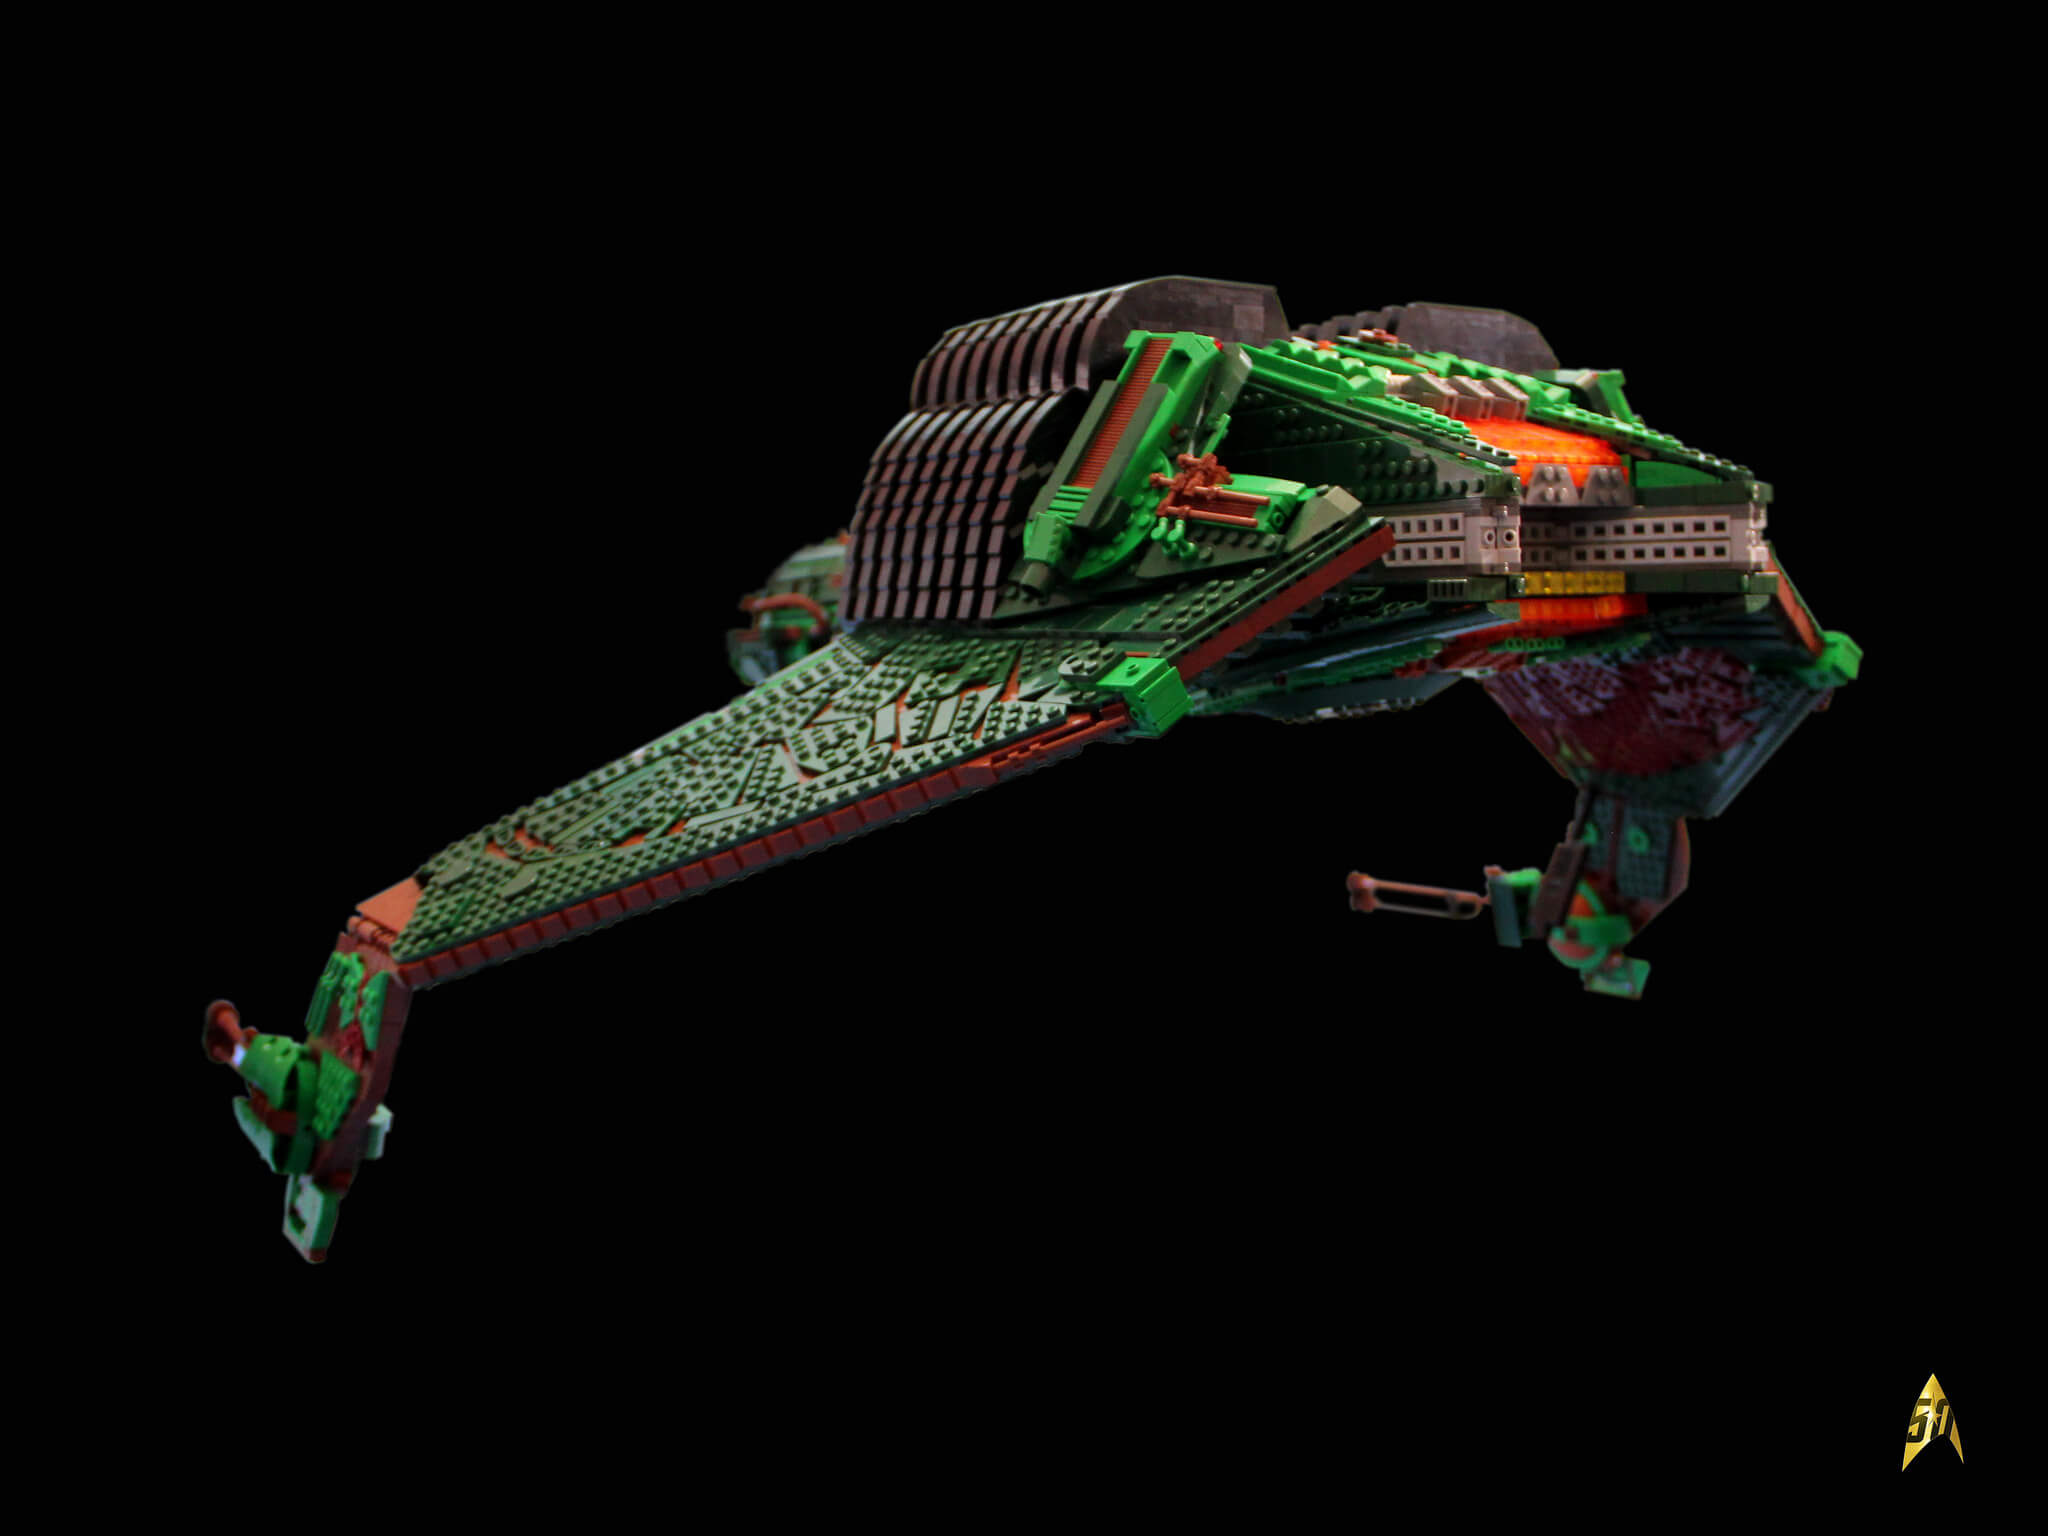 lego star trek bird of prey 9 (1)